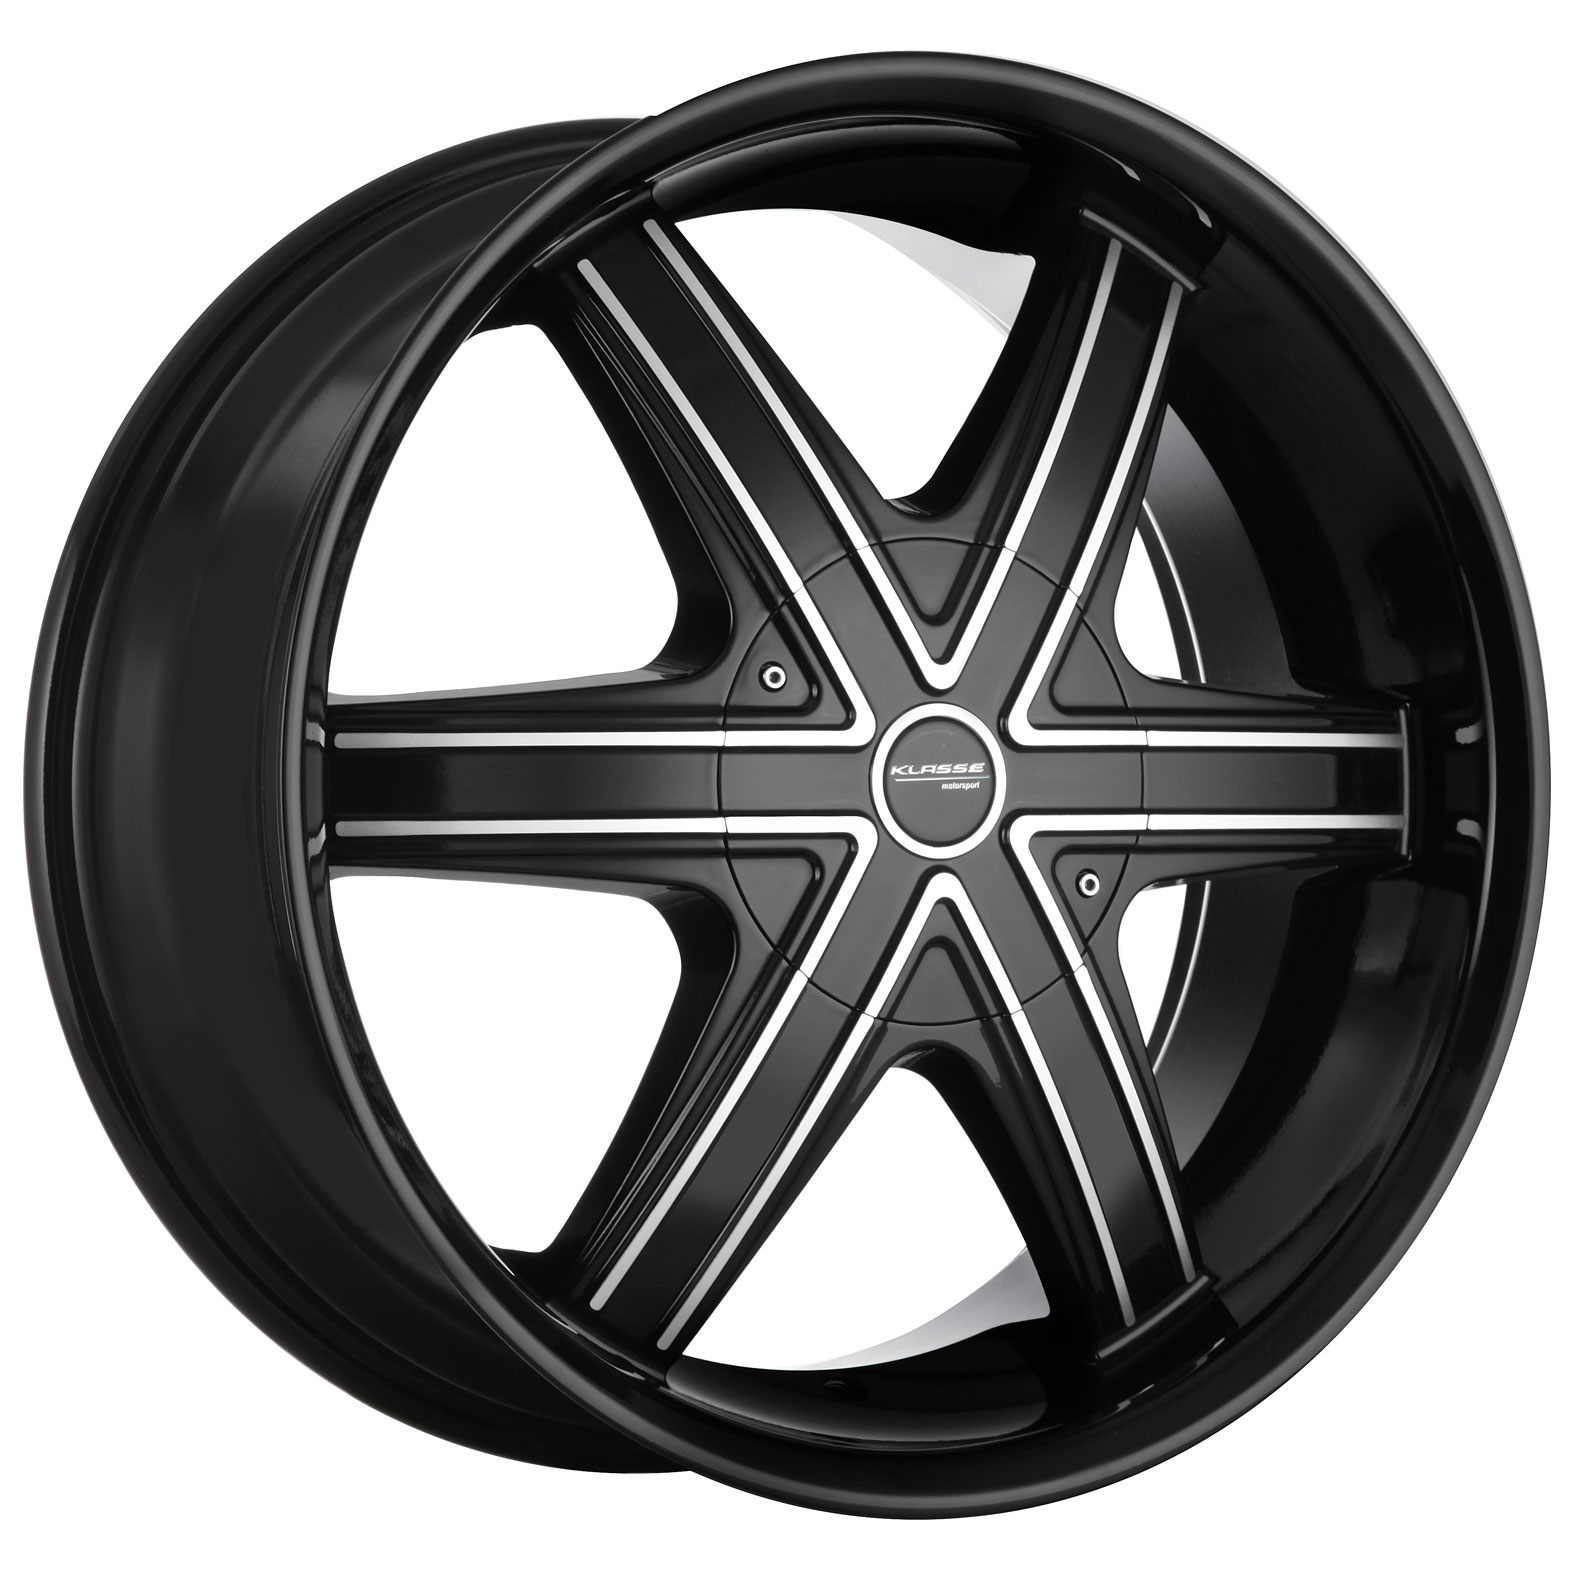 Klasse Cypher Black Gloss Titanium Wheel